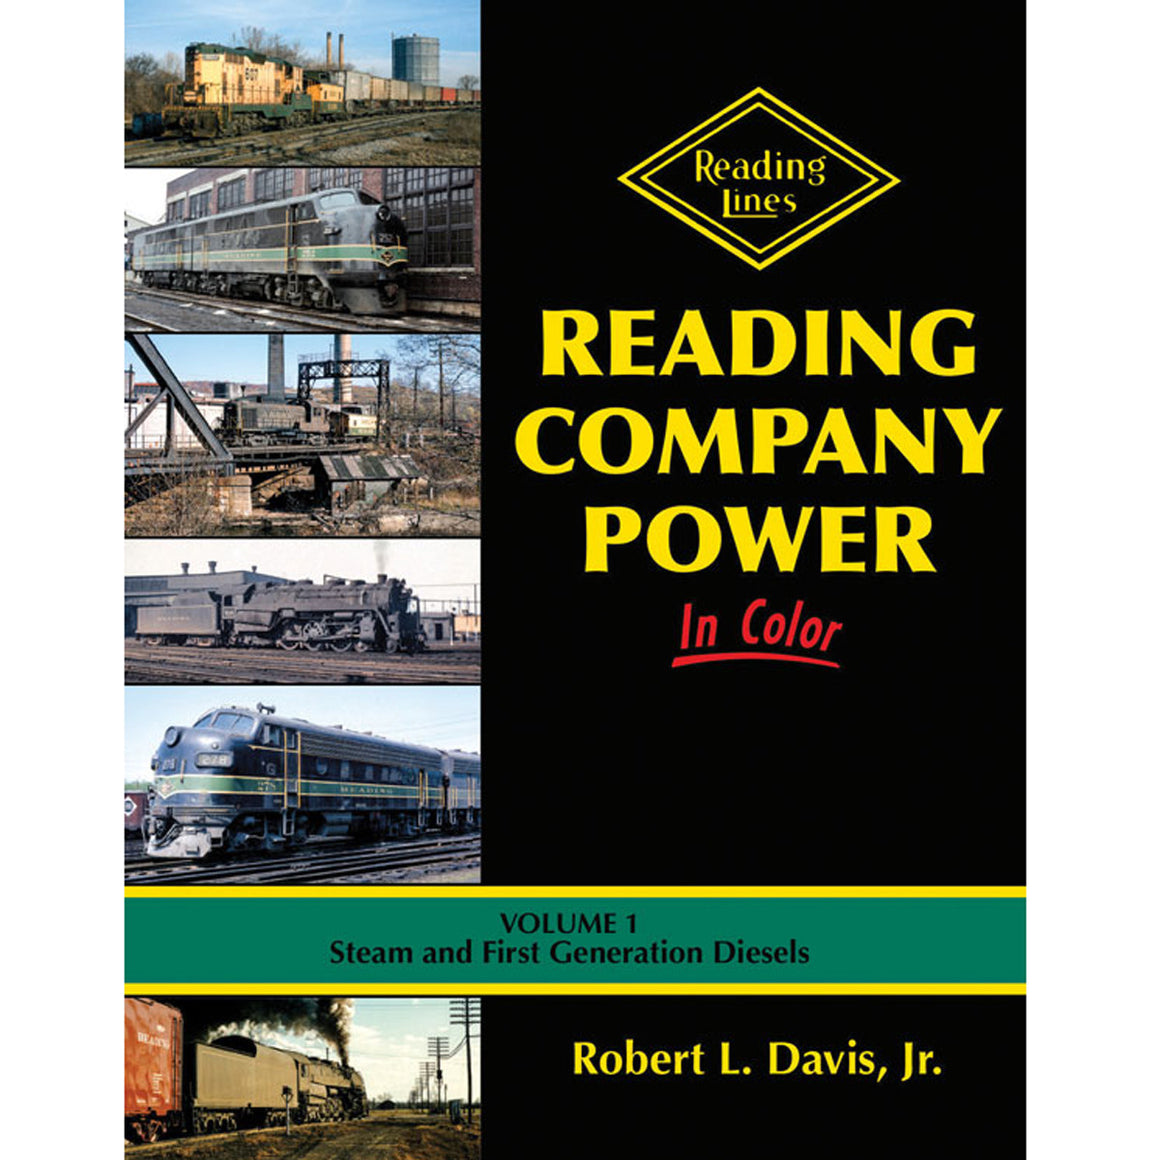 Books: Reading Company Power In Color - Volume 1